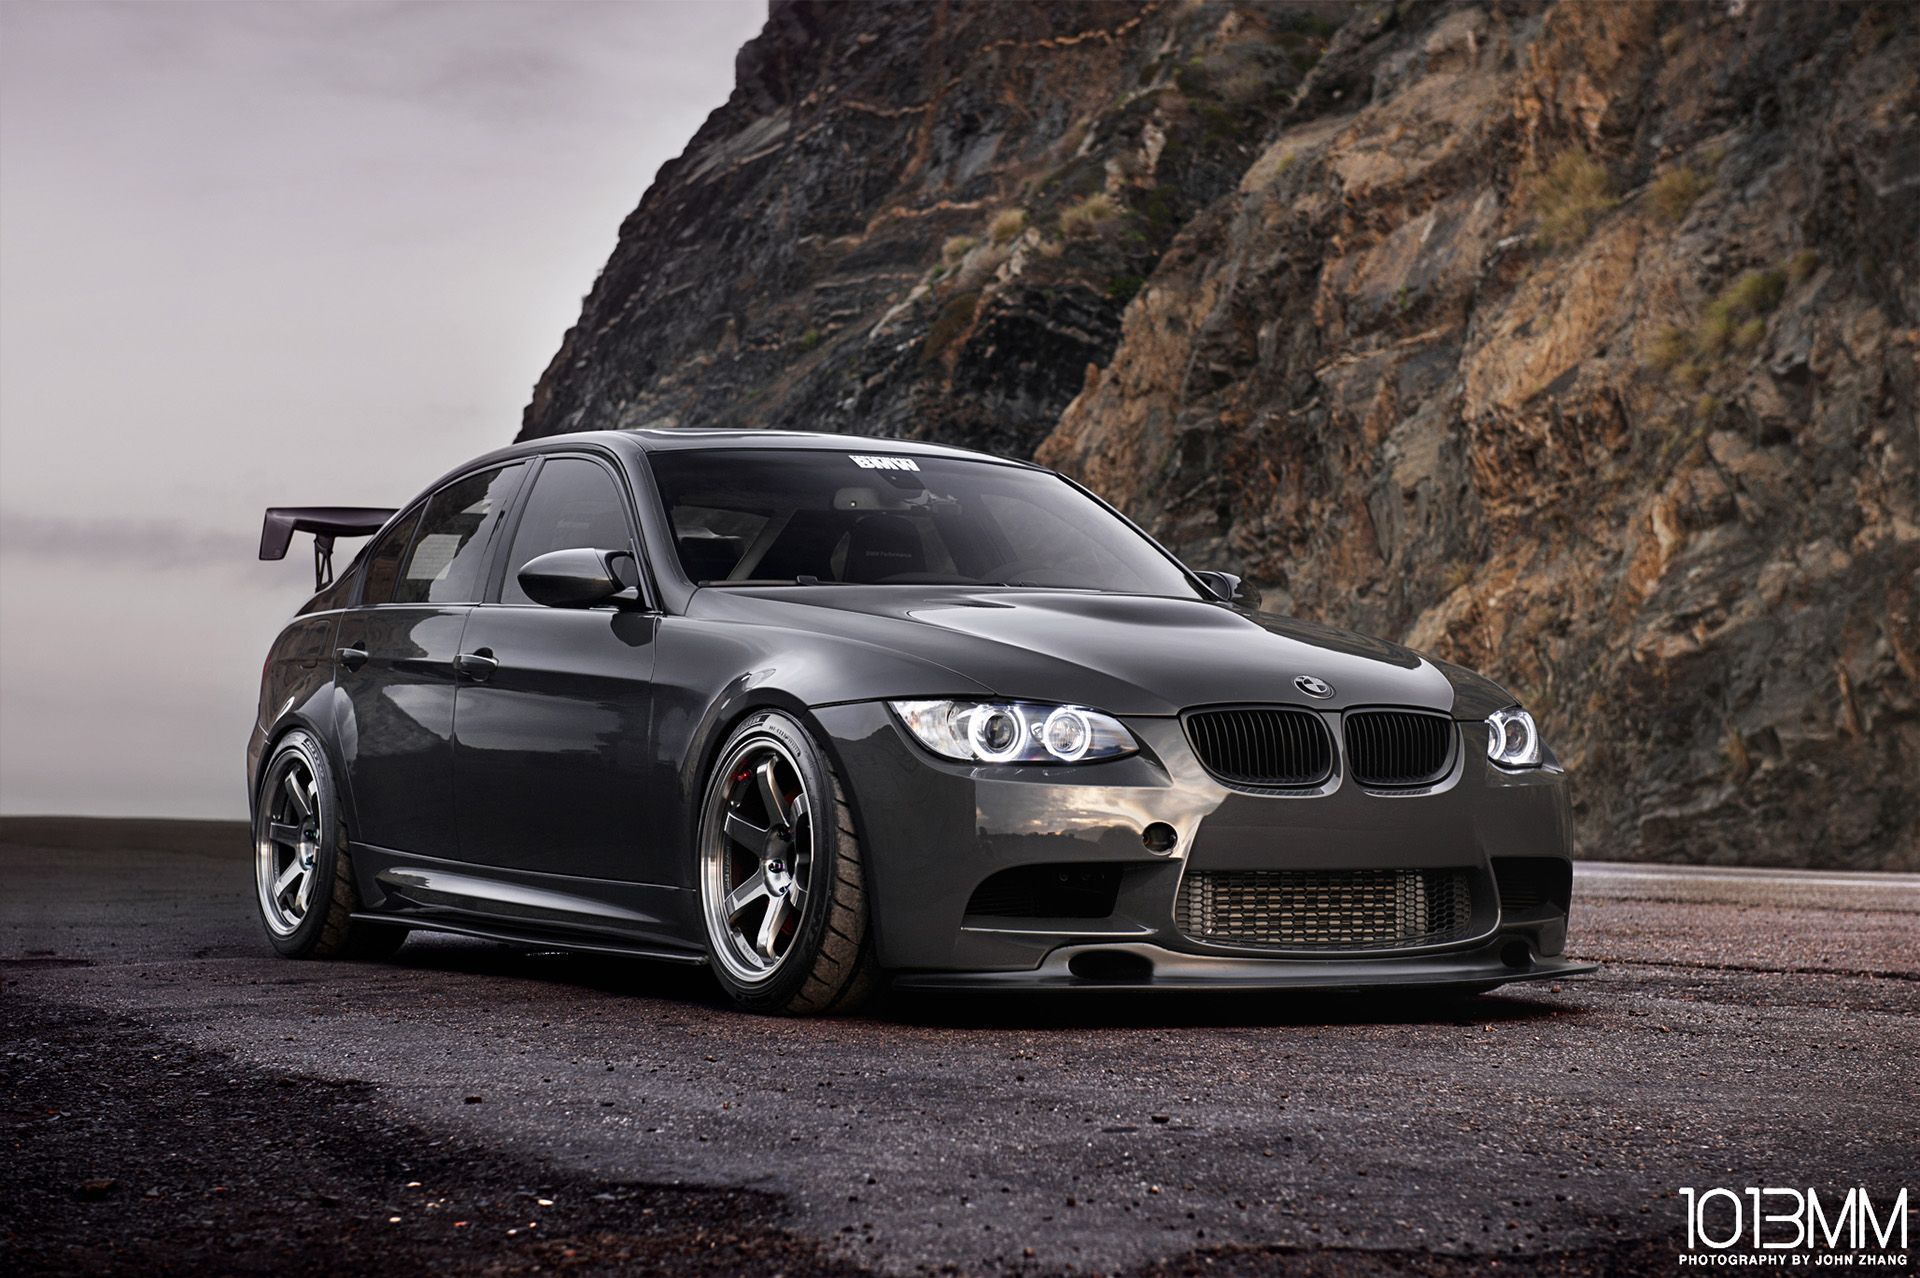 Bmw 335i photoshoot by 1013mm photography 01 750x499 photo